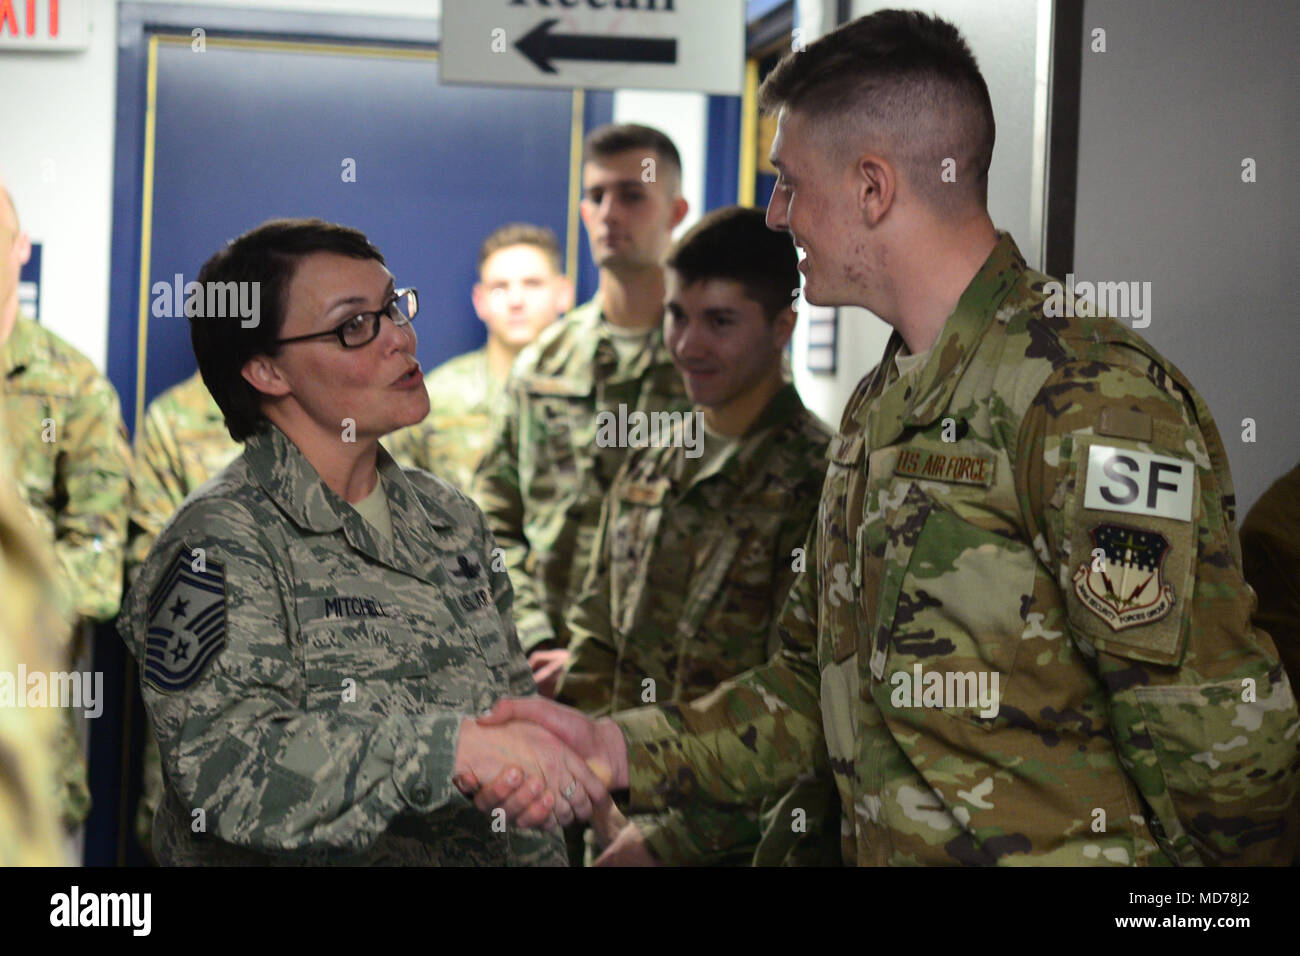 Chief Master Sgt. Amber Mitchell, 341st Missile Wing command chief, left, presents a coin to Airman Gideon Magrini, 841st Missile Security Forces Squadron missile security operator, Mar. 23, 2018, at Malmstrom Air Force Base, Mont. Magrini was among 117 graduates from the Air Assault School in Fort Bliss, Texas, in March. (U.S. Air Force photo by Airman 1st Class Tristan Truesdell) - Stock Image